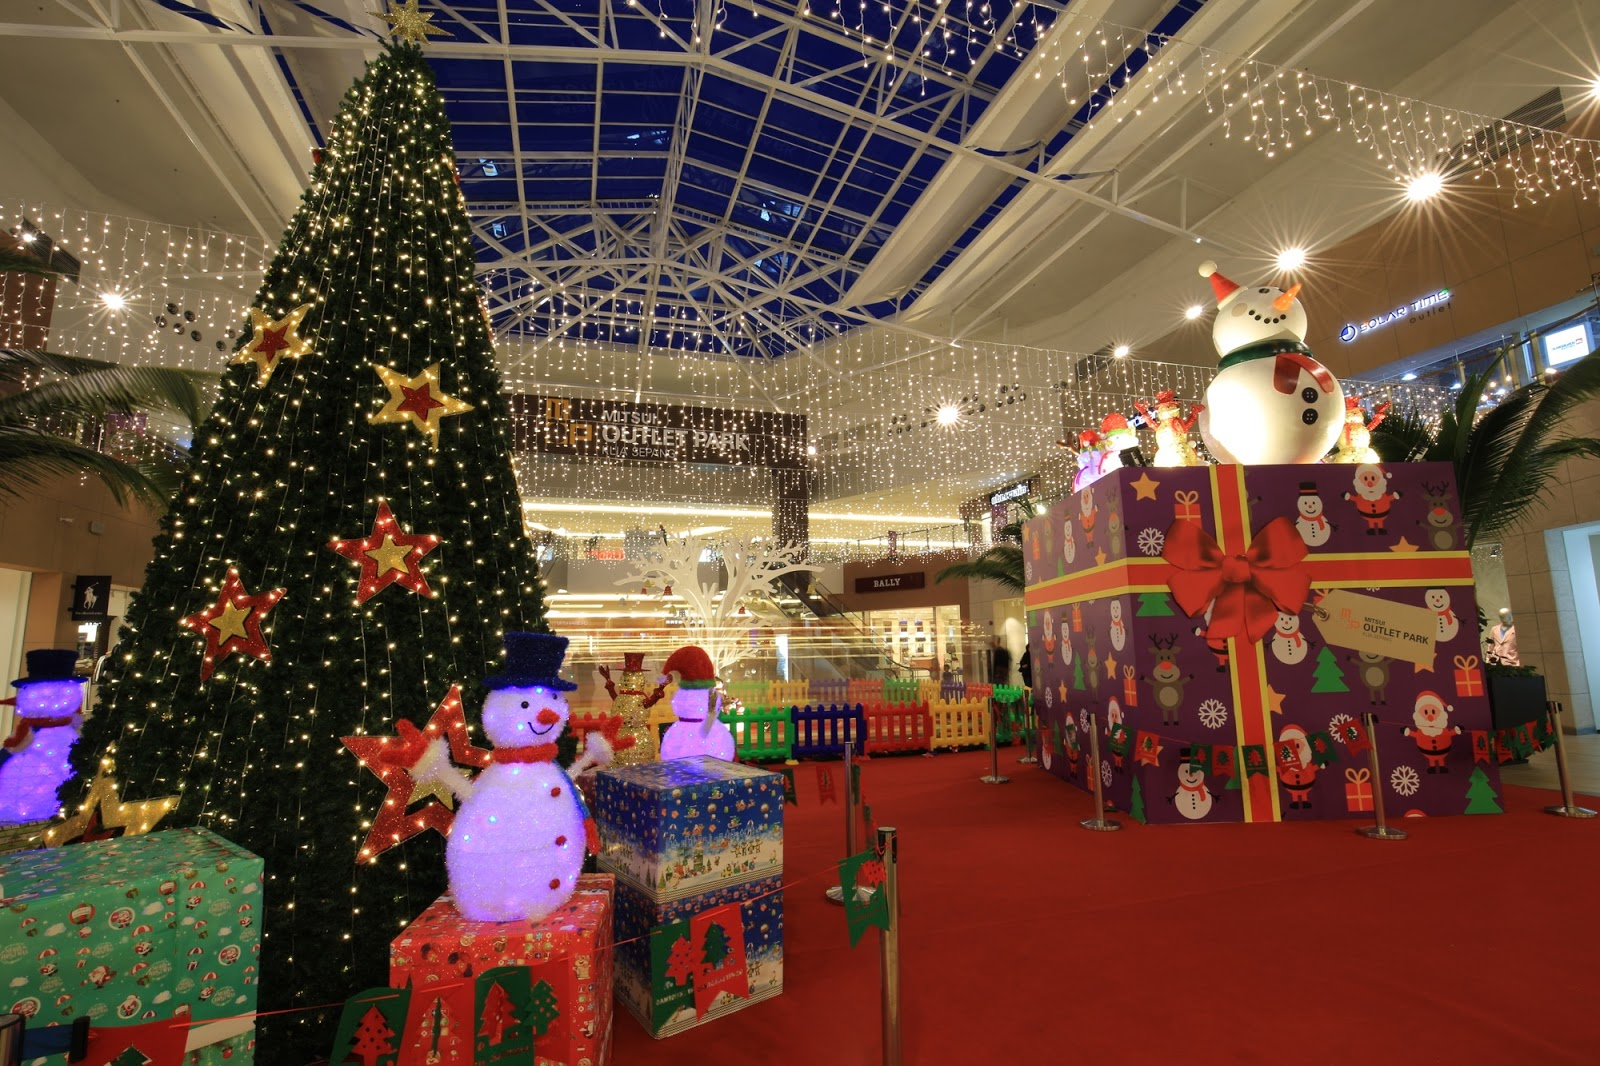 It s the best time of the year to grab items on sale and admire all the  lovely Christmas decorations. This year 2c3d7d17f25